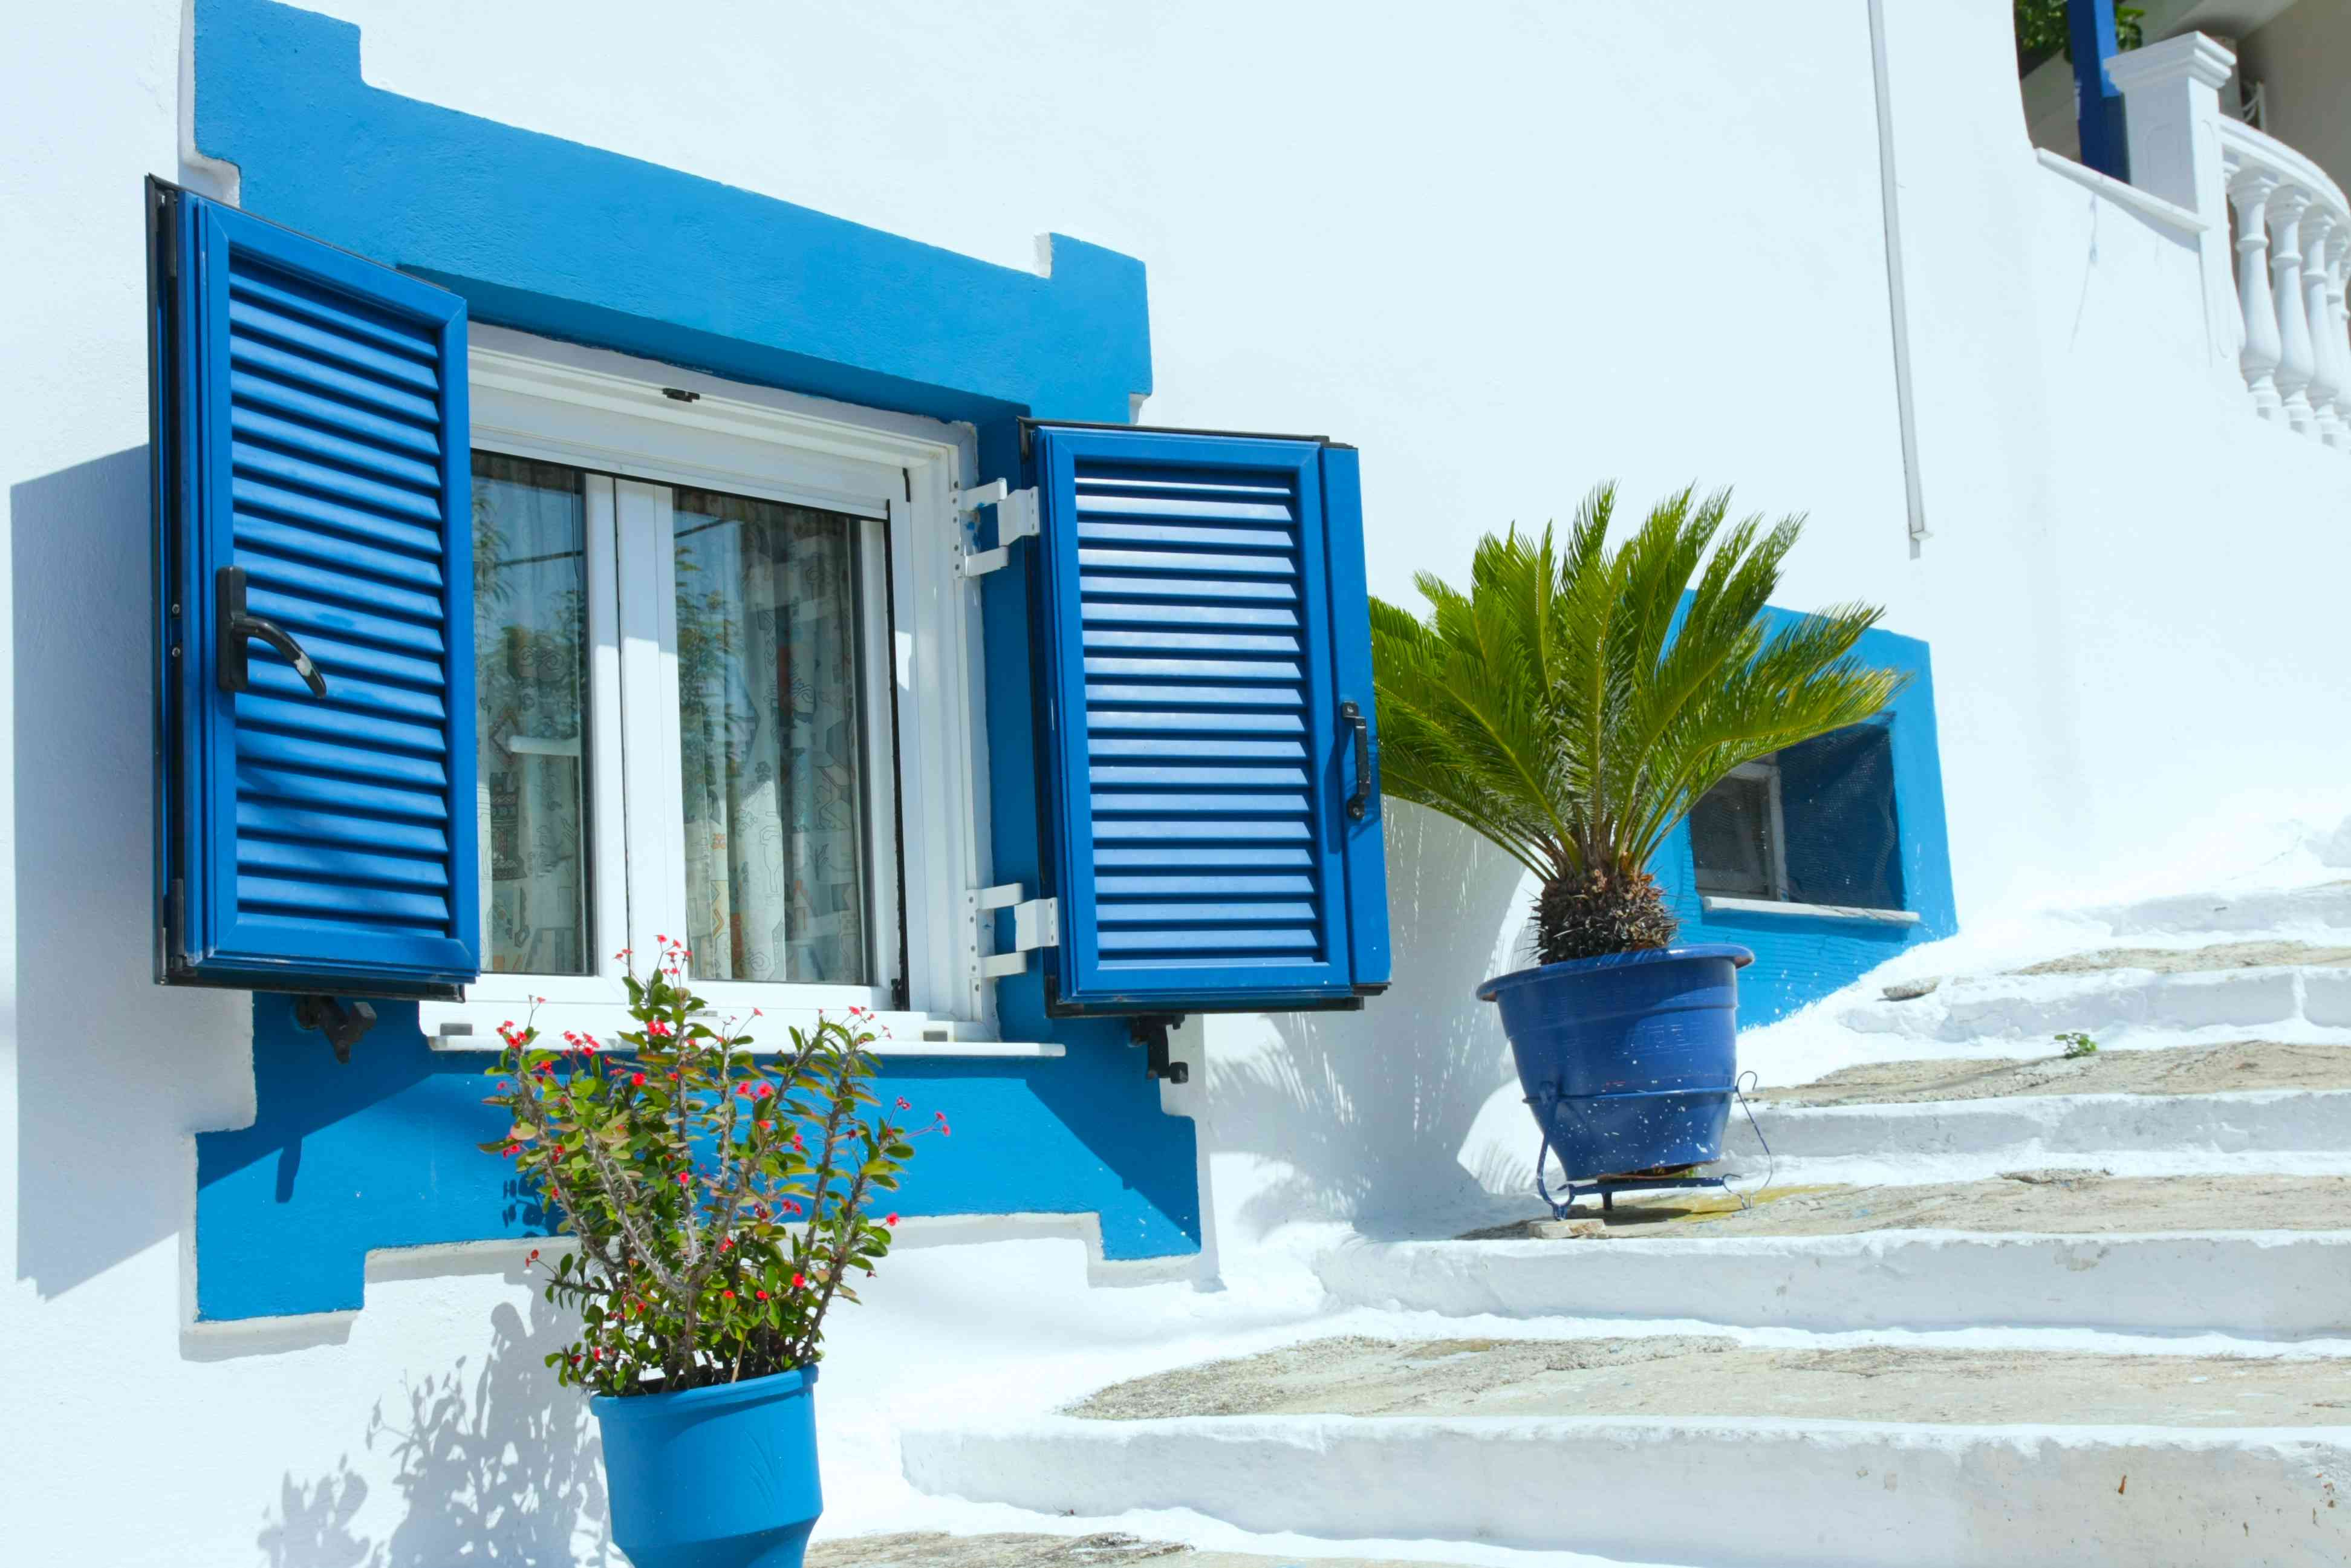 White building with blue shutters on a square window